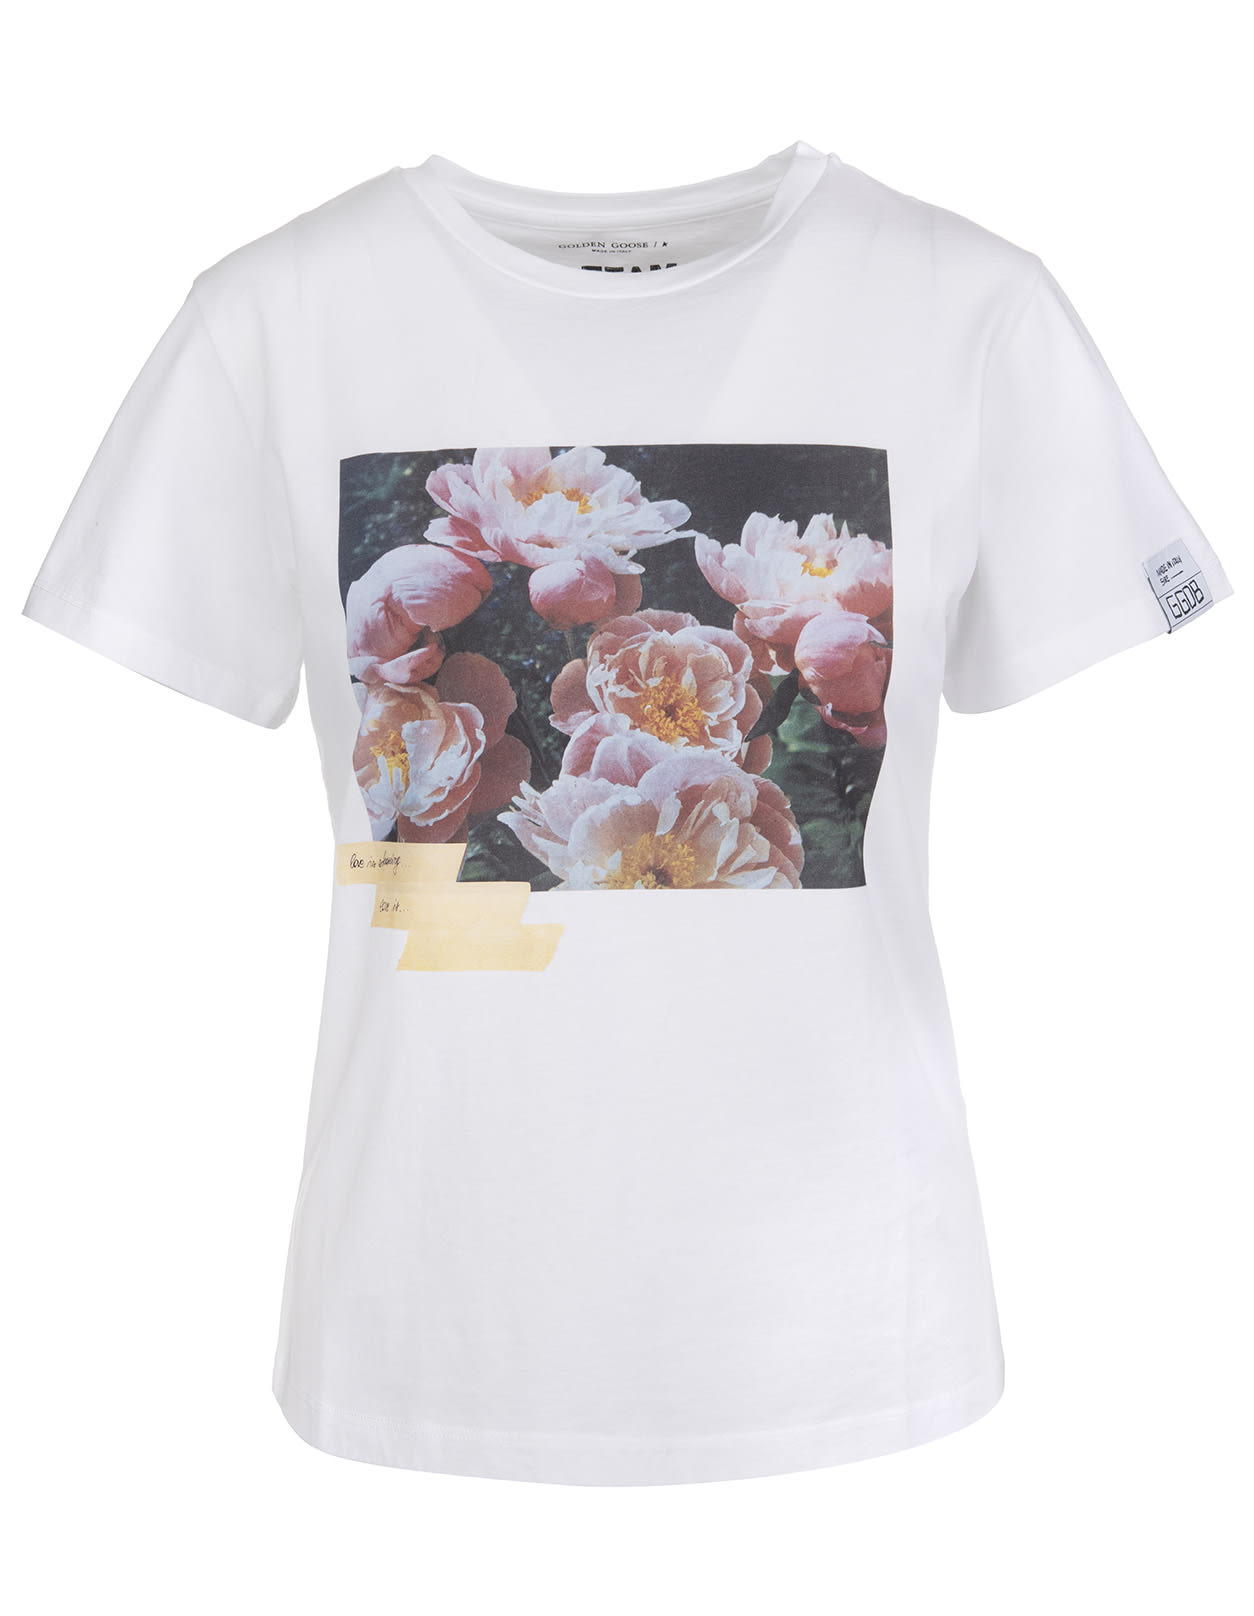 Golden Goose Ania White Woman T-shirt Dream Maker Collection With Adhesive Tape Effect Print